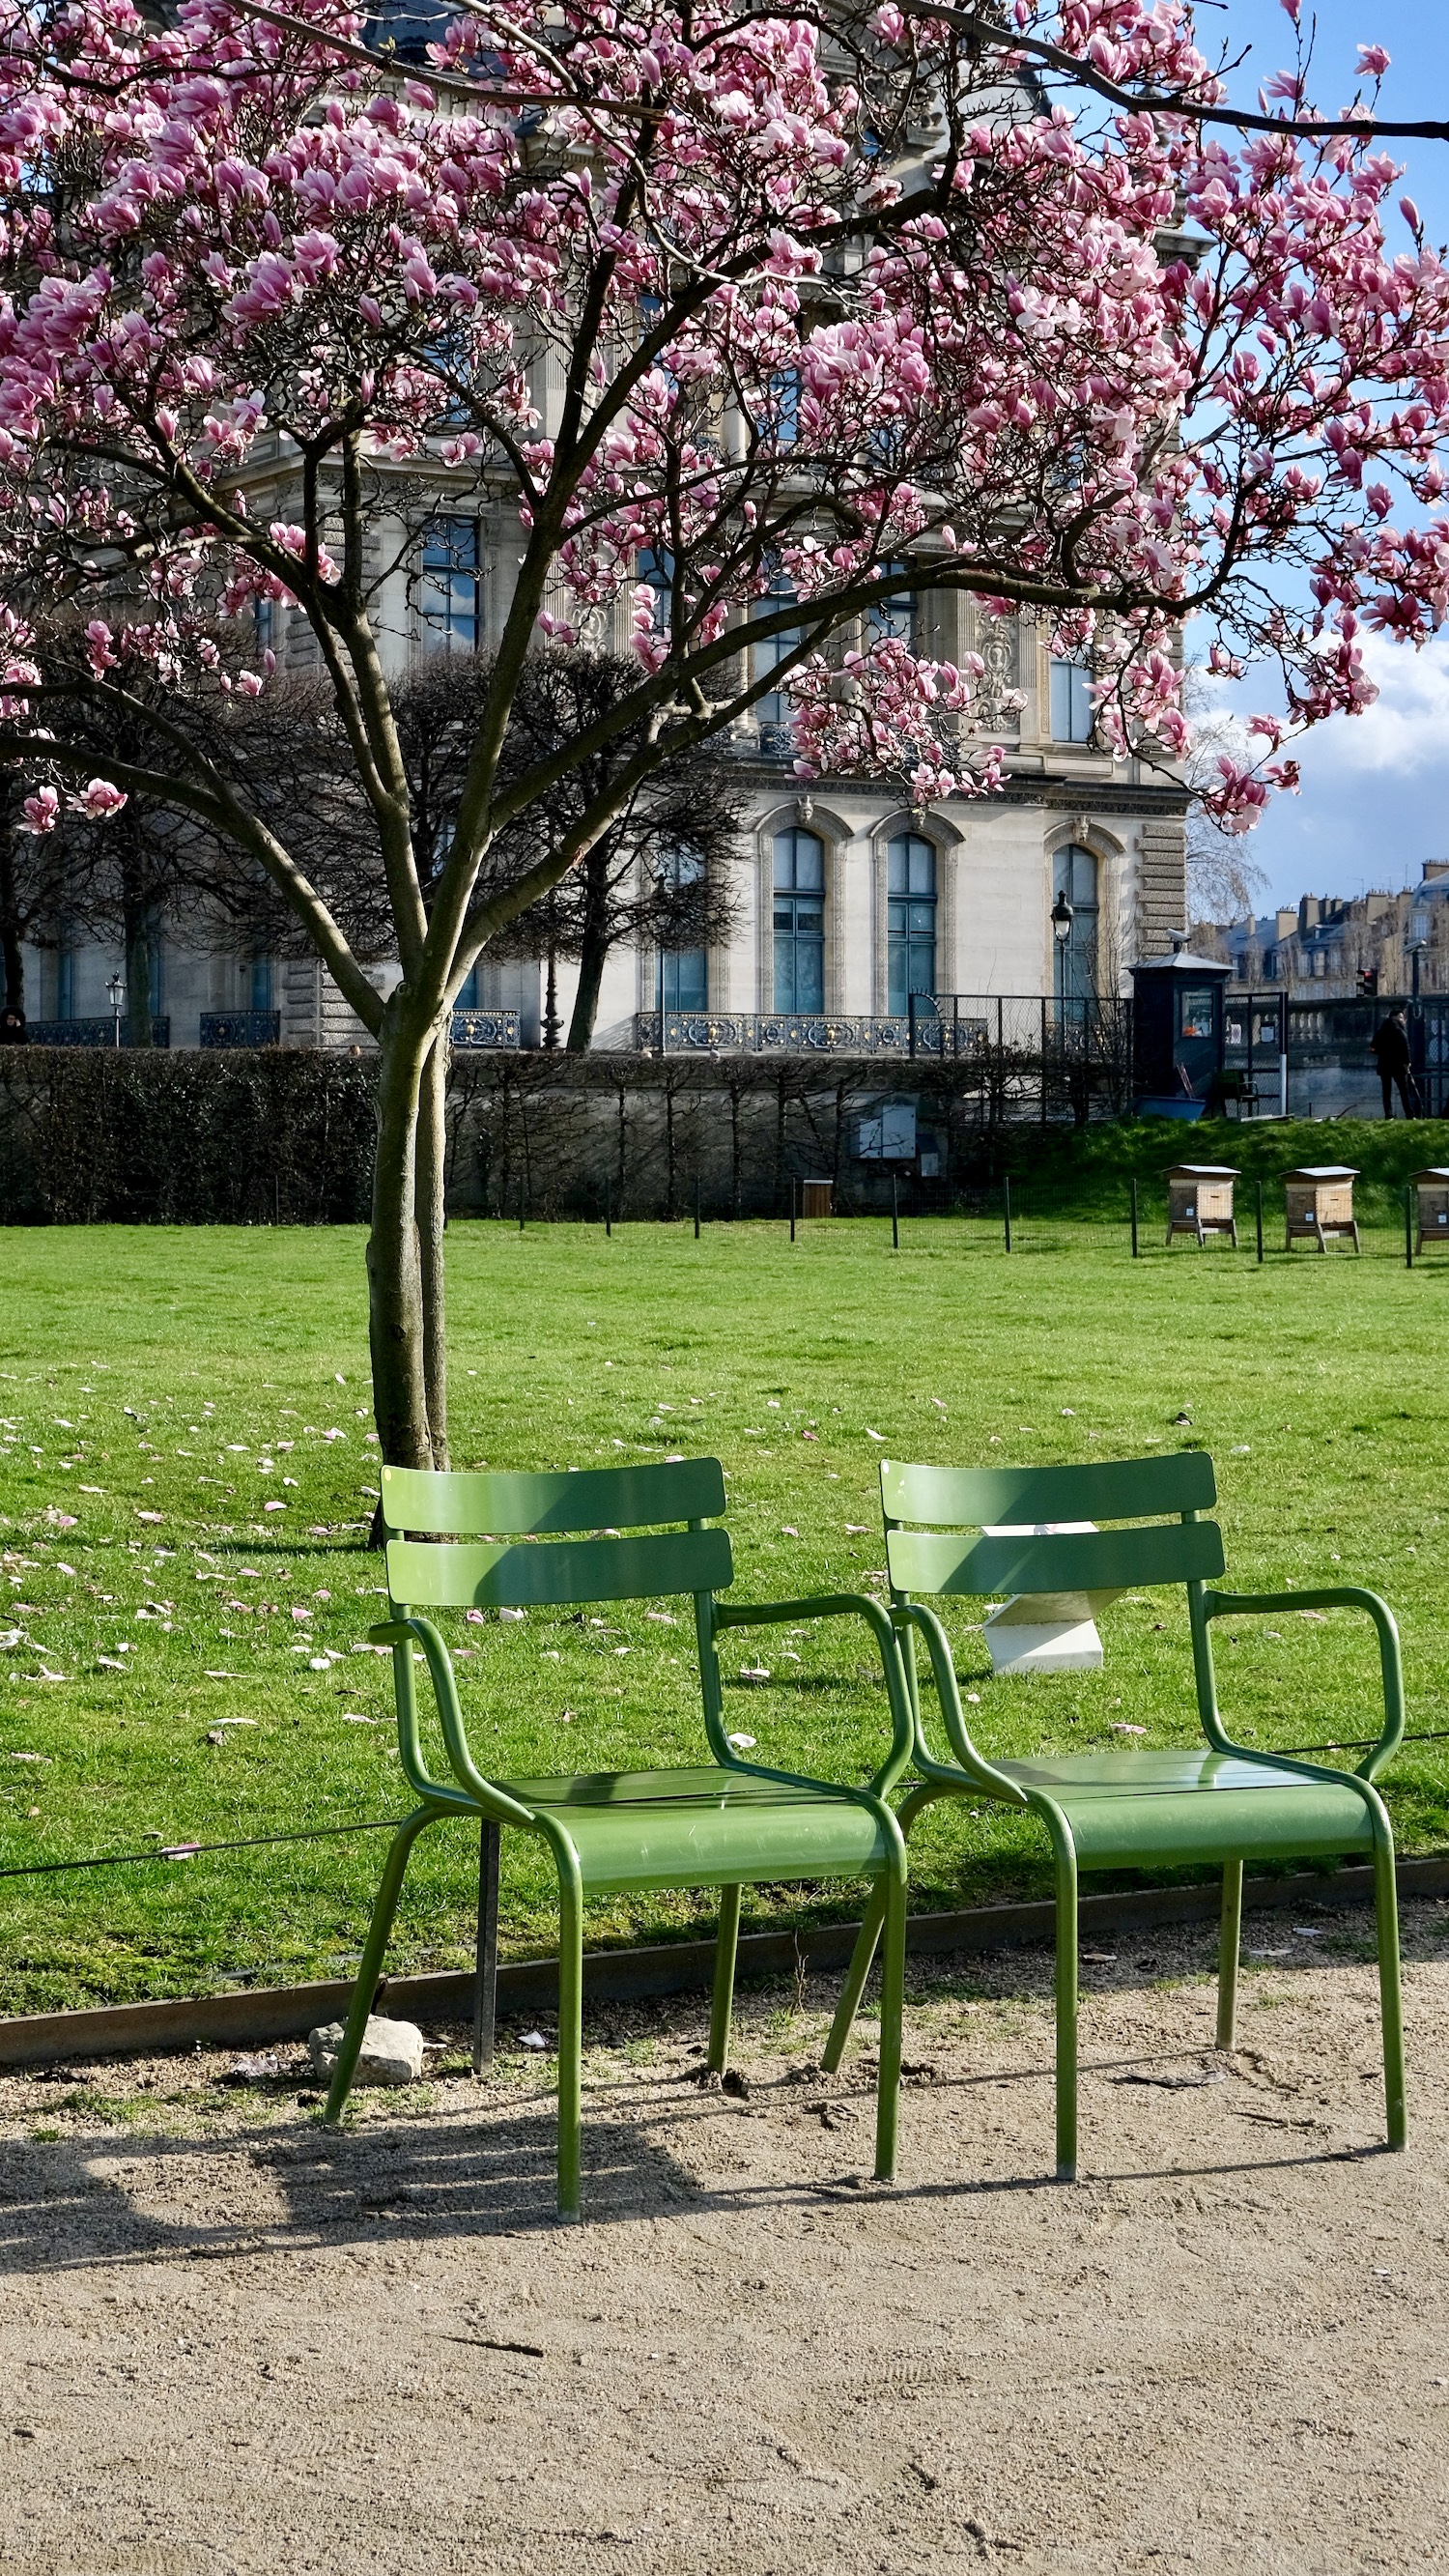 Green Chairs with Magnolia Blooms at the Tuileries